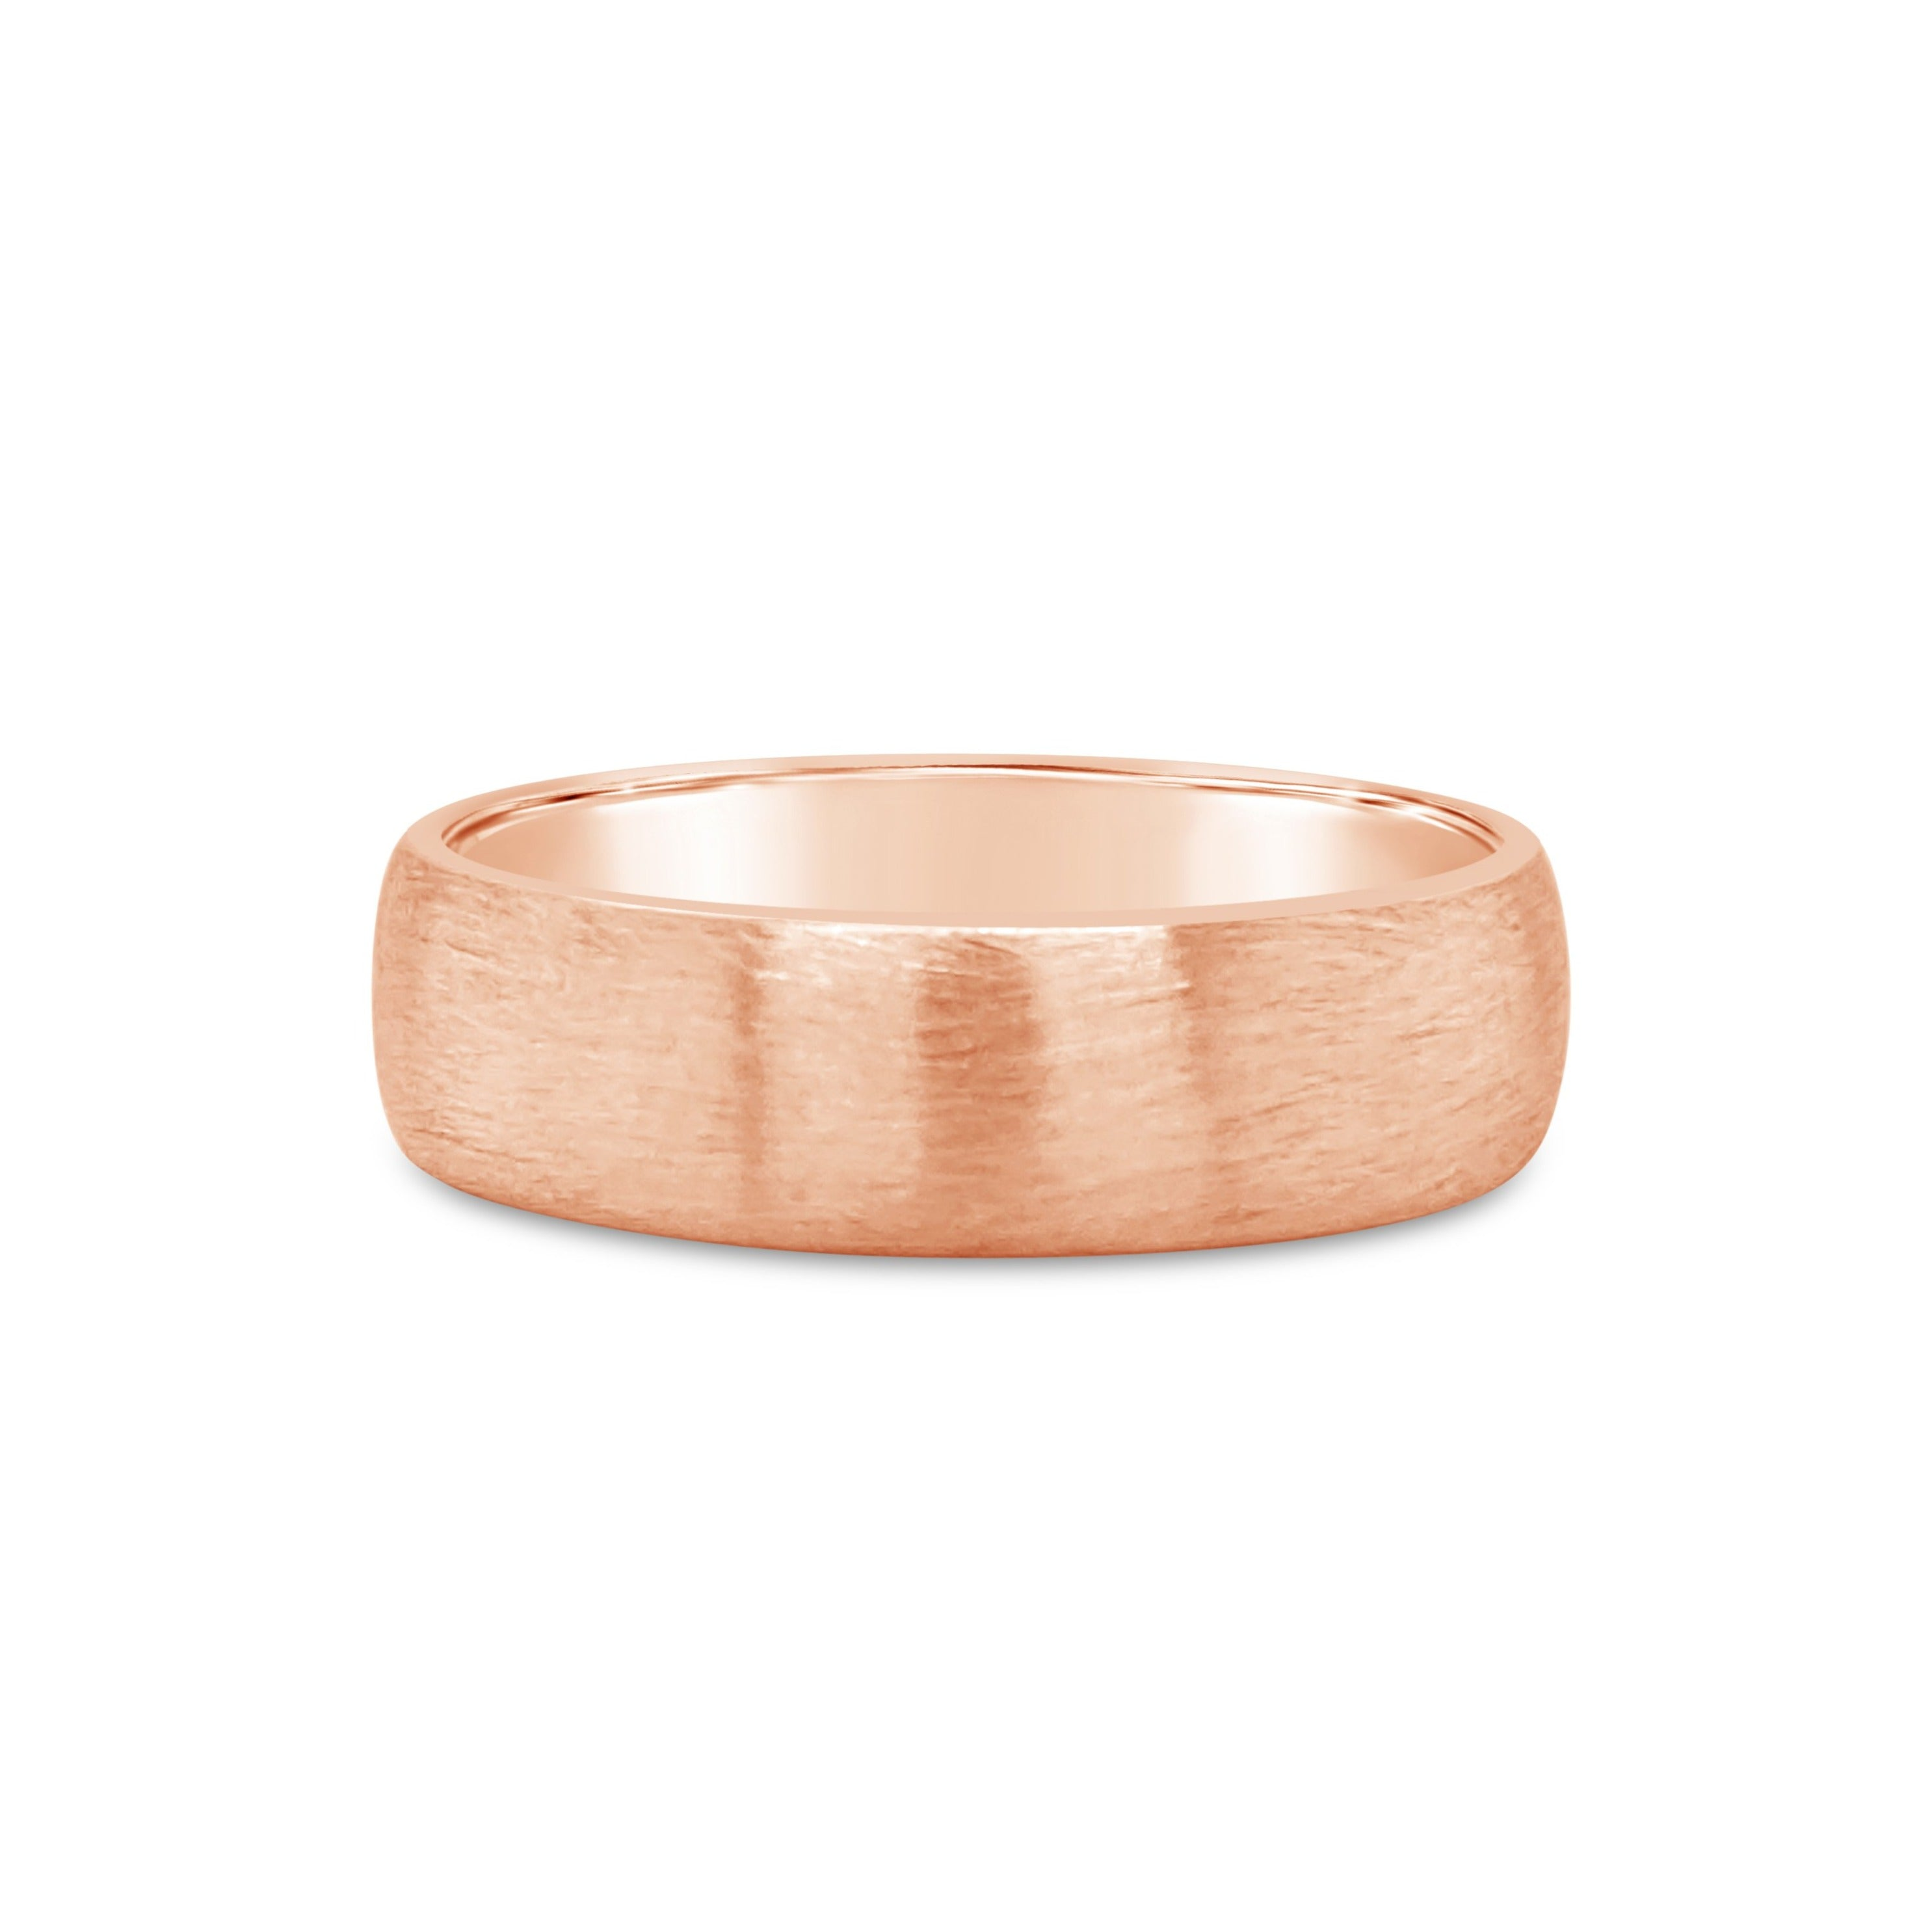 18ct Rose gold mens band 6mm wide with brushed finish